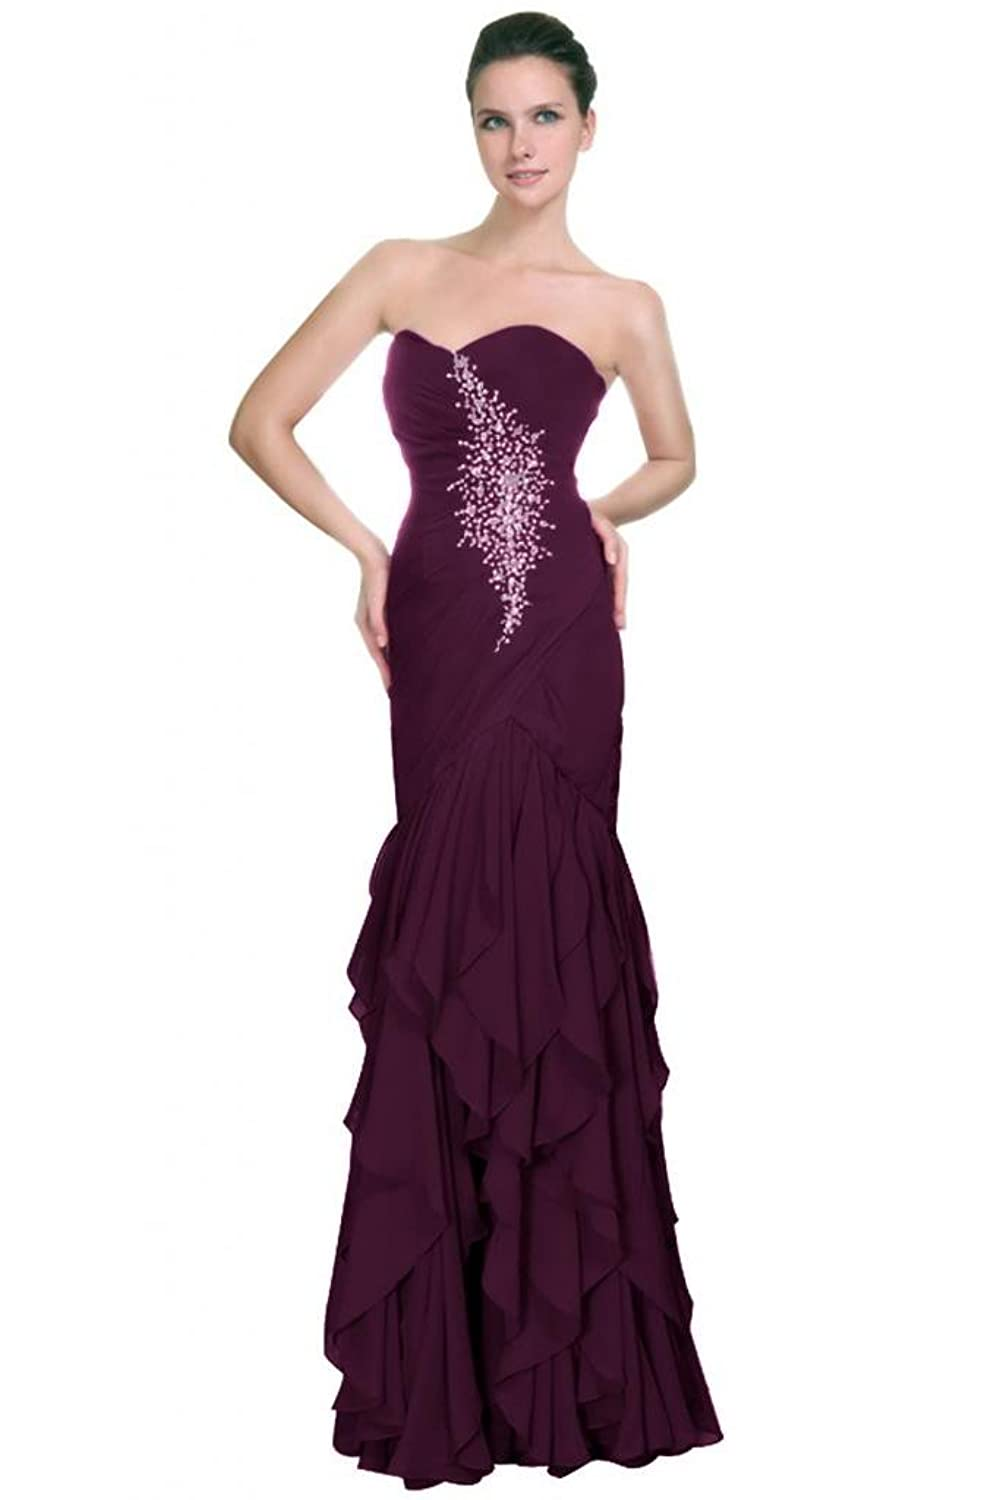 Sunvary Mermaid Asymmetrical Formal Party Gowns Straplesss Evening Dresses